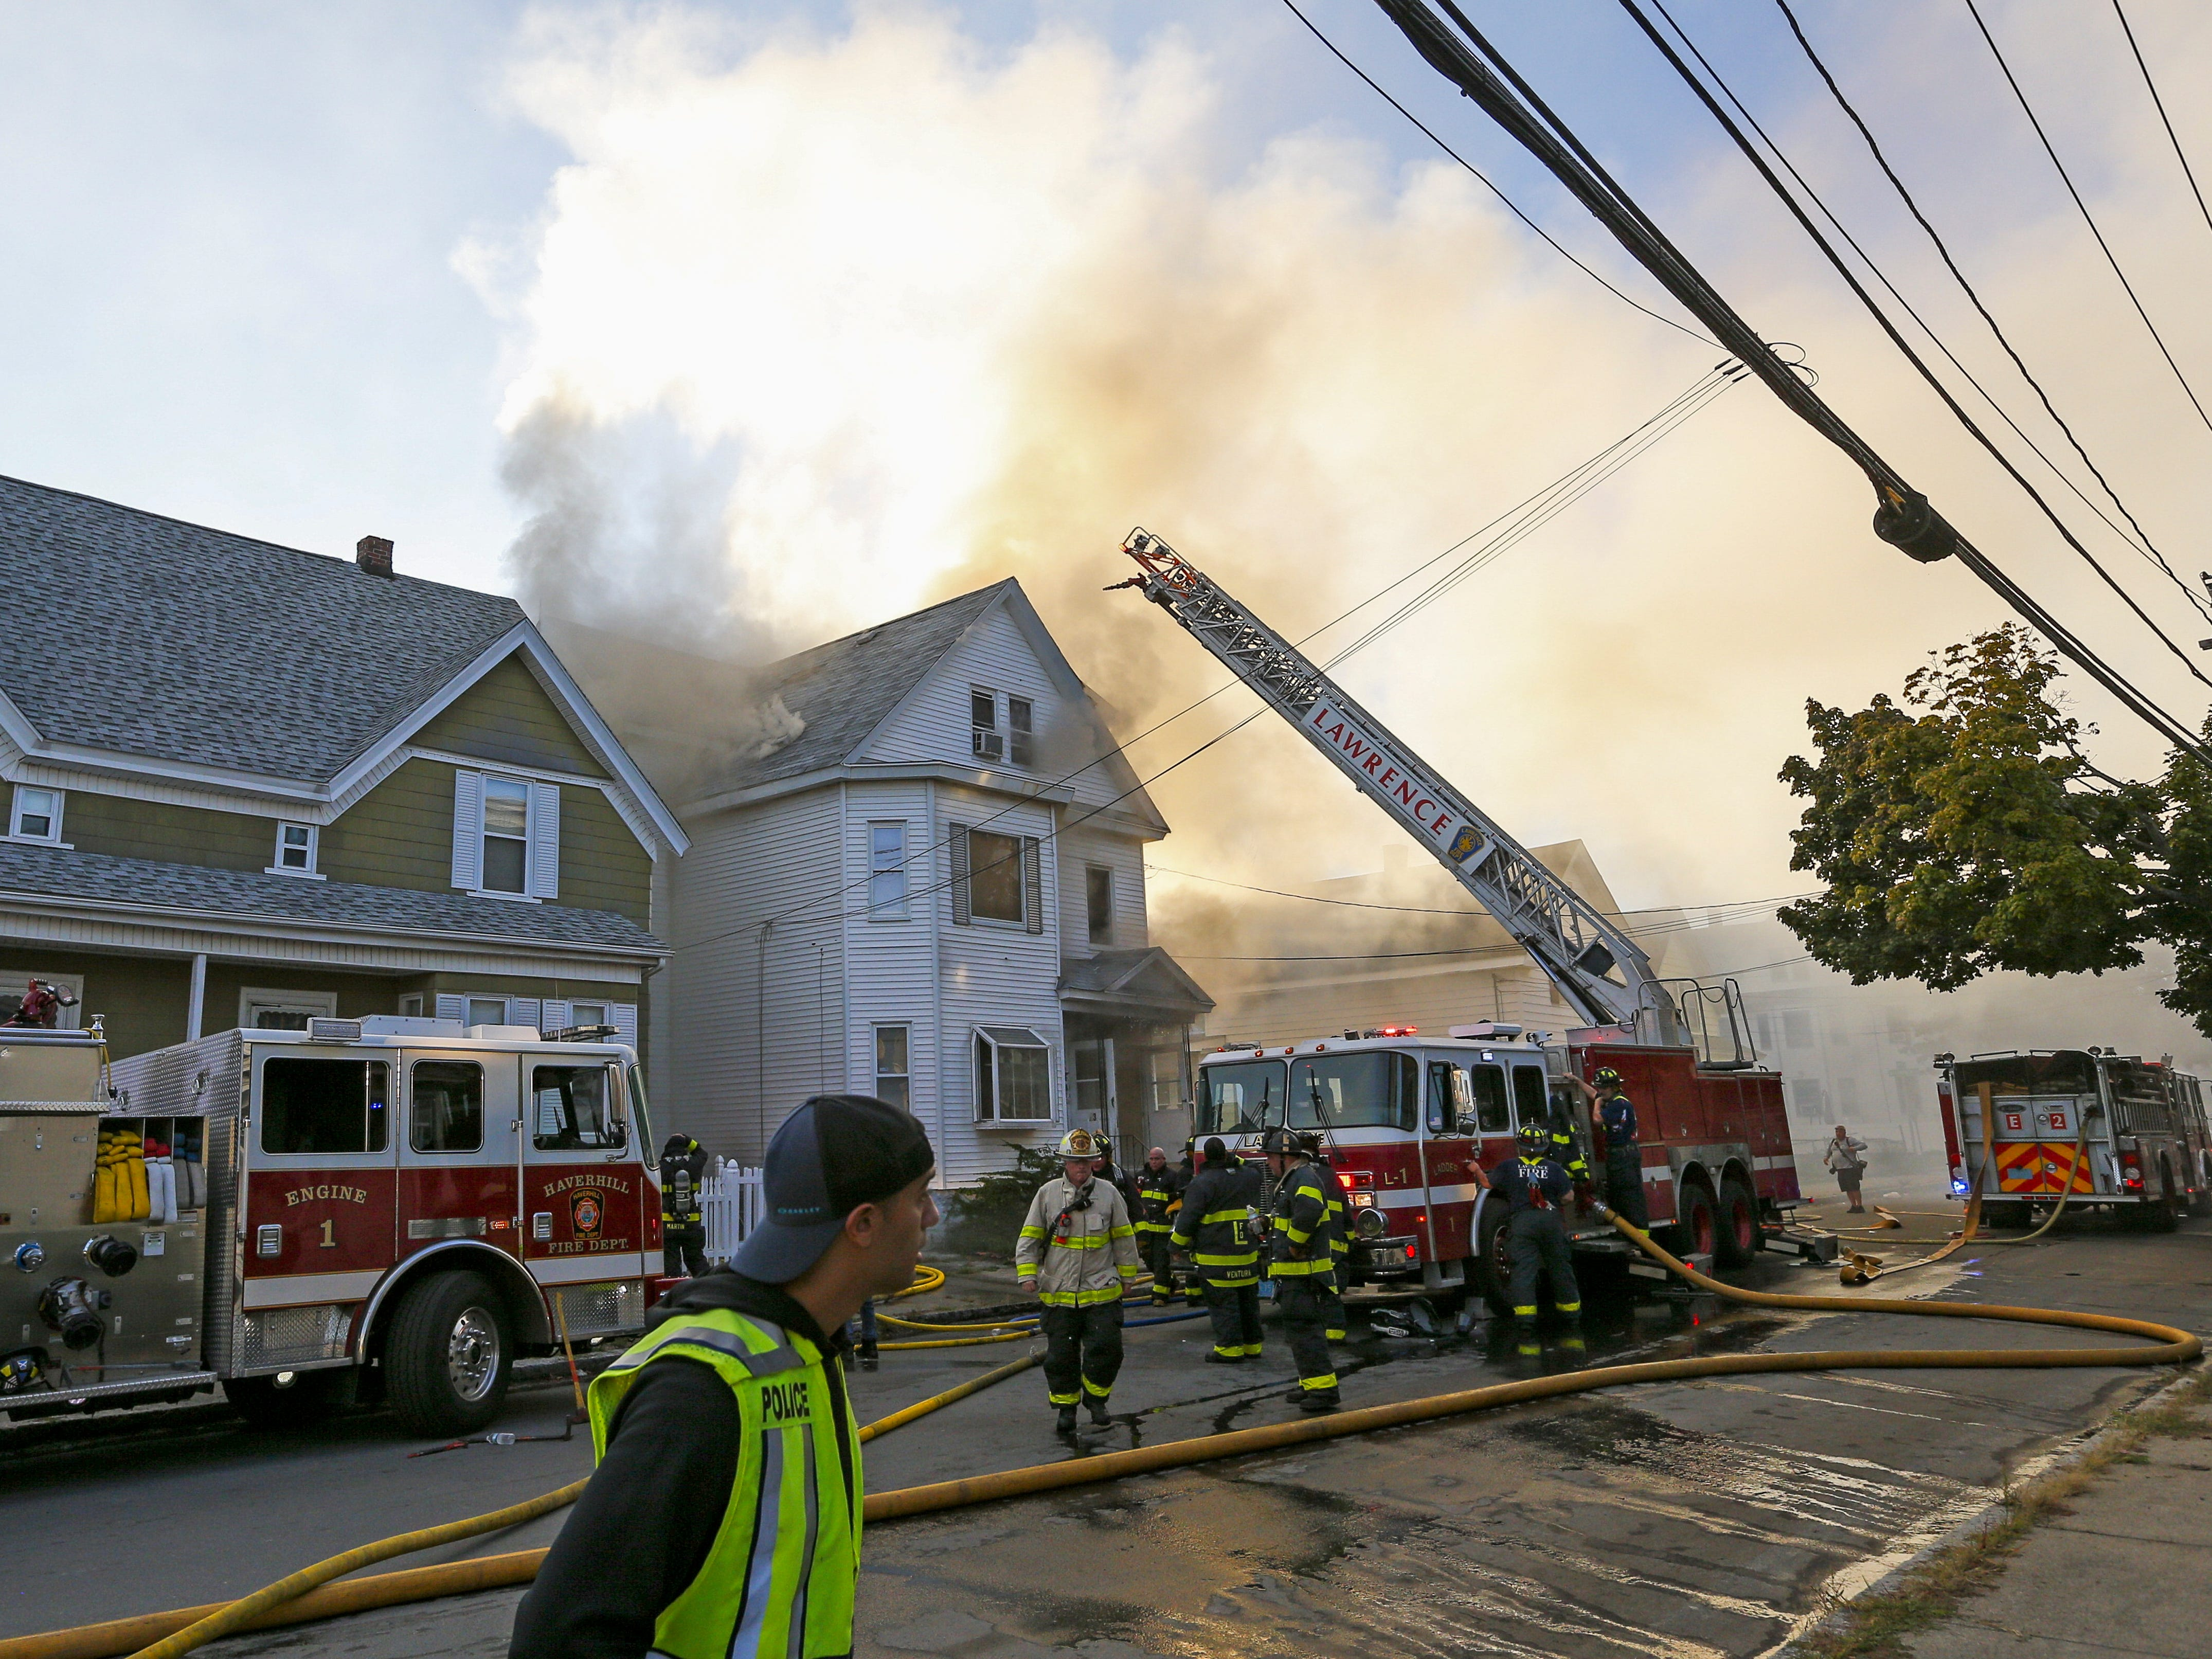 Firefighters battle a fire in a house in Lawrence, Mass. on Sept. 13 2018.